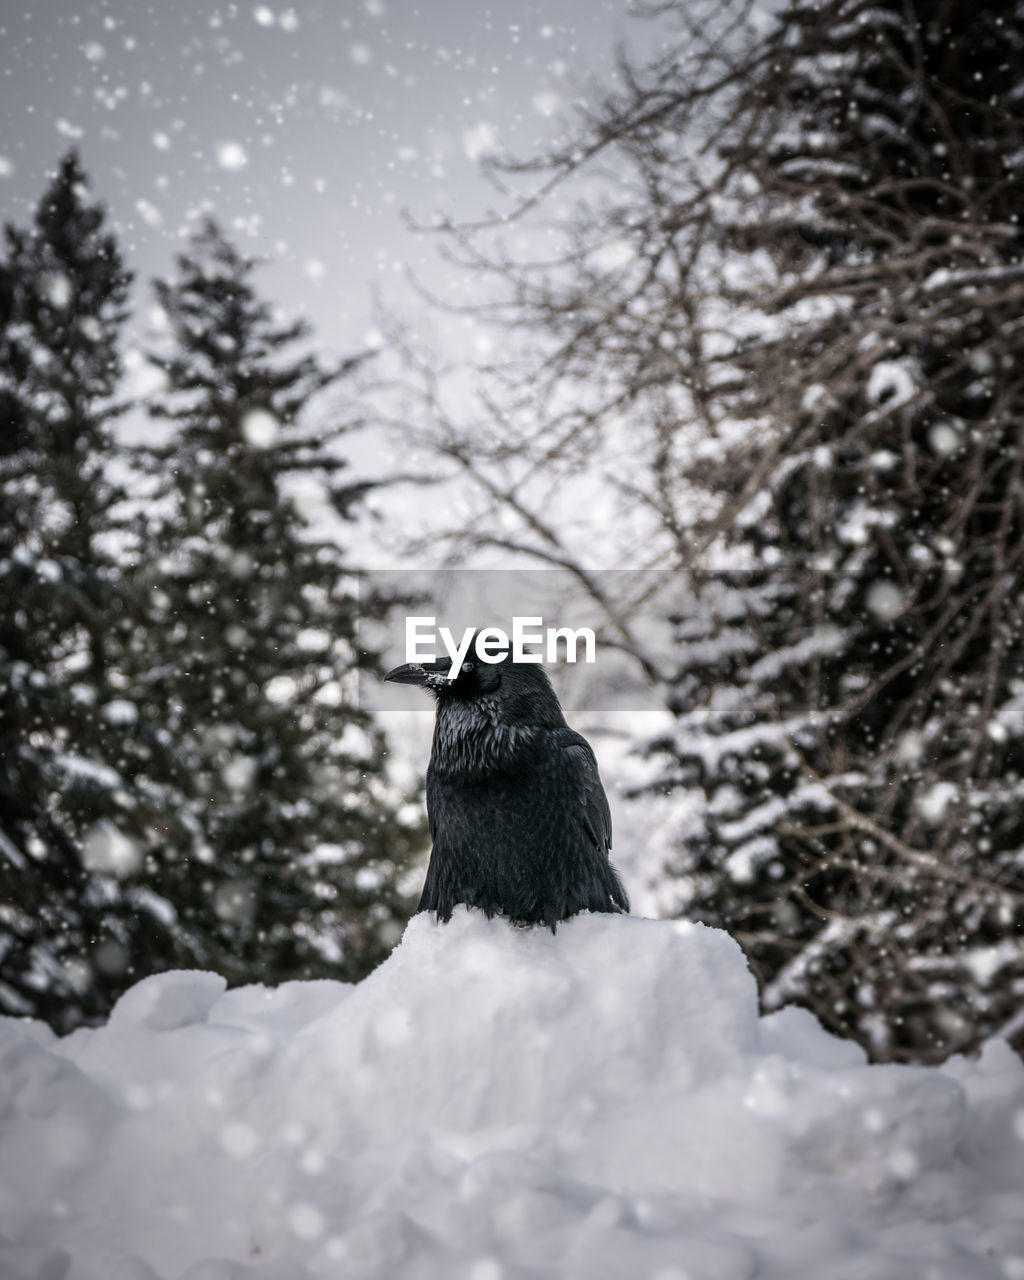 snow, bird, one animal, winter, animal themes, animals in the wild, nature, cold temperature, tree, weather, day, animal wildlife, outdoors, no people, perching, beauty in nature, low angle view, raven - bird, sky, close-up